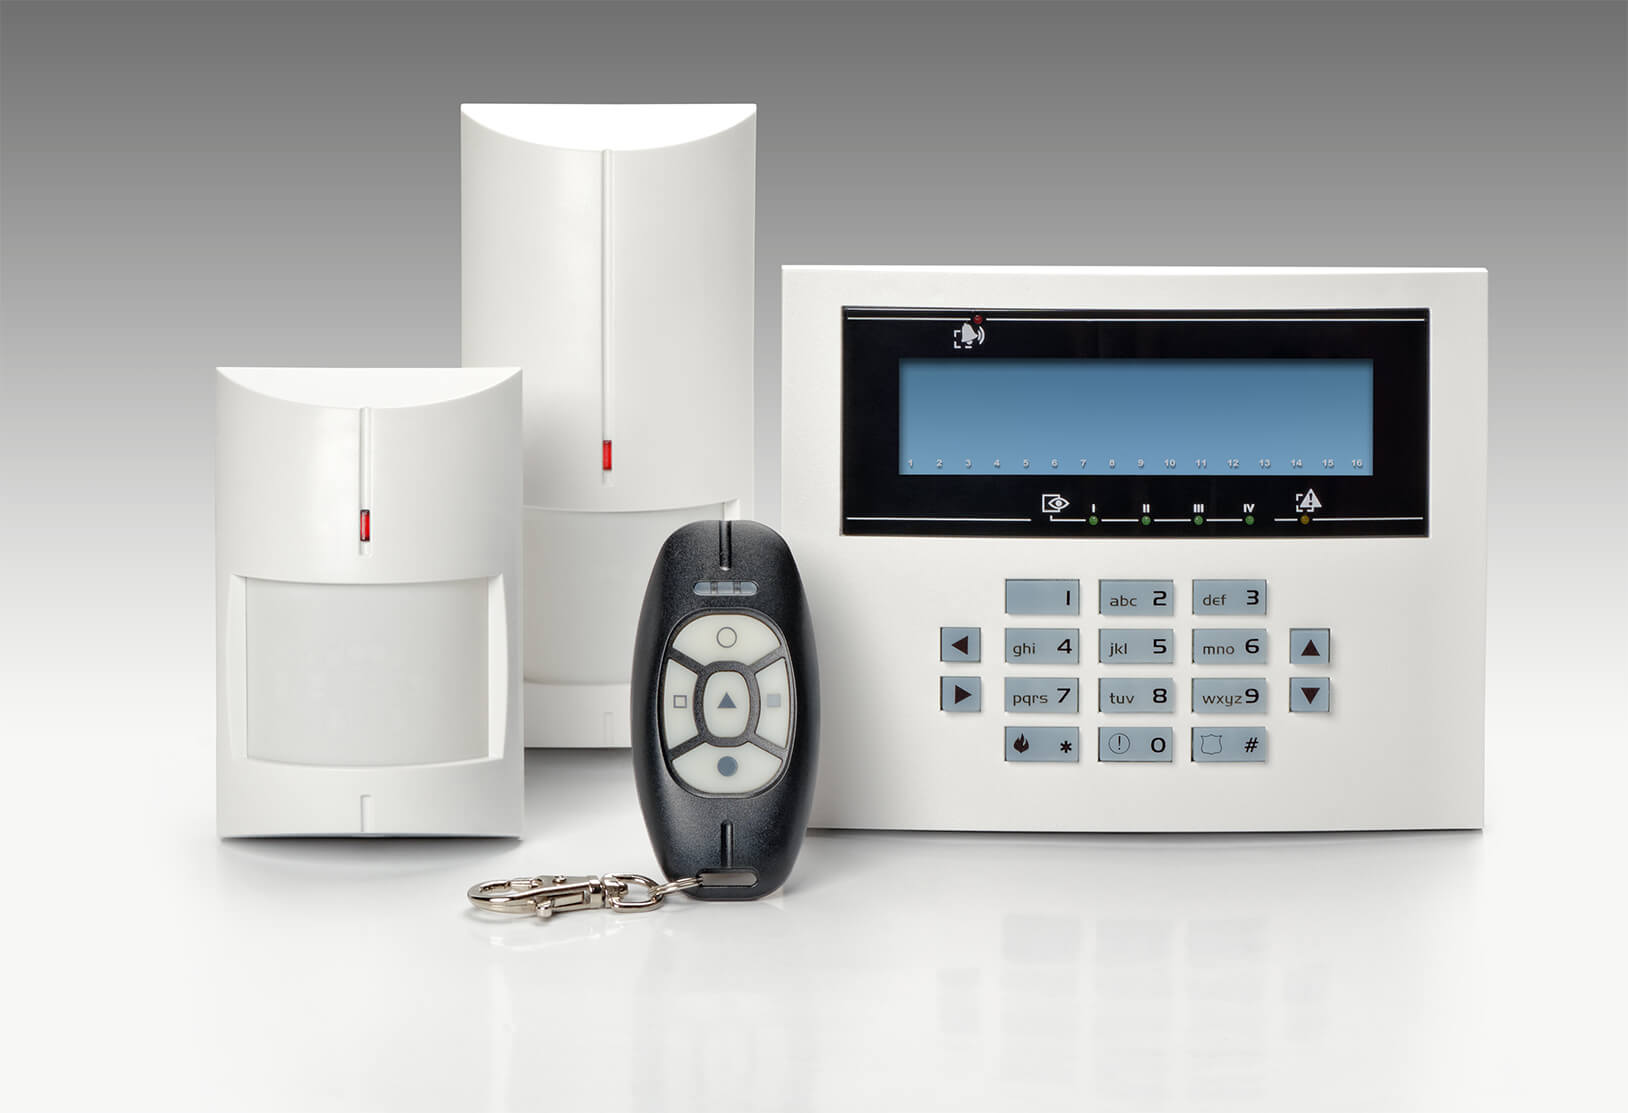 Business & Residential NACOSS Approved Burglar Alarms In Croydon SW16 - Local Croydon SW16 security company.Call 02078872244 - Dedicated to Safety & Security. Companies, shops and homes ..